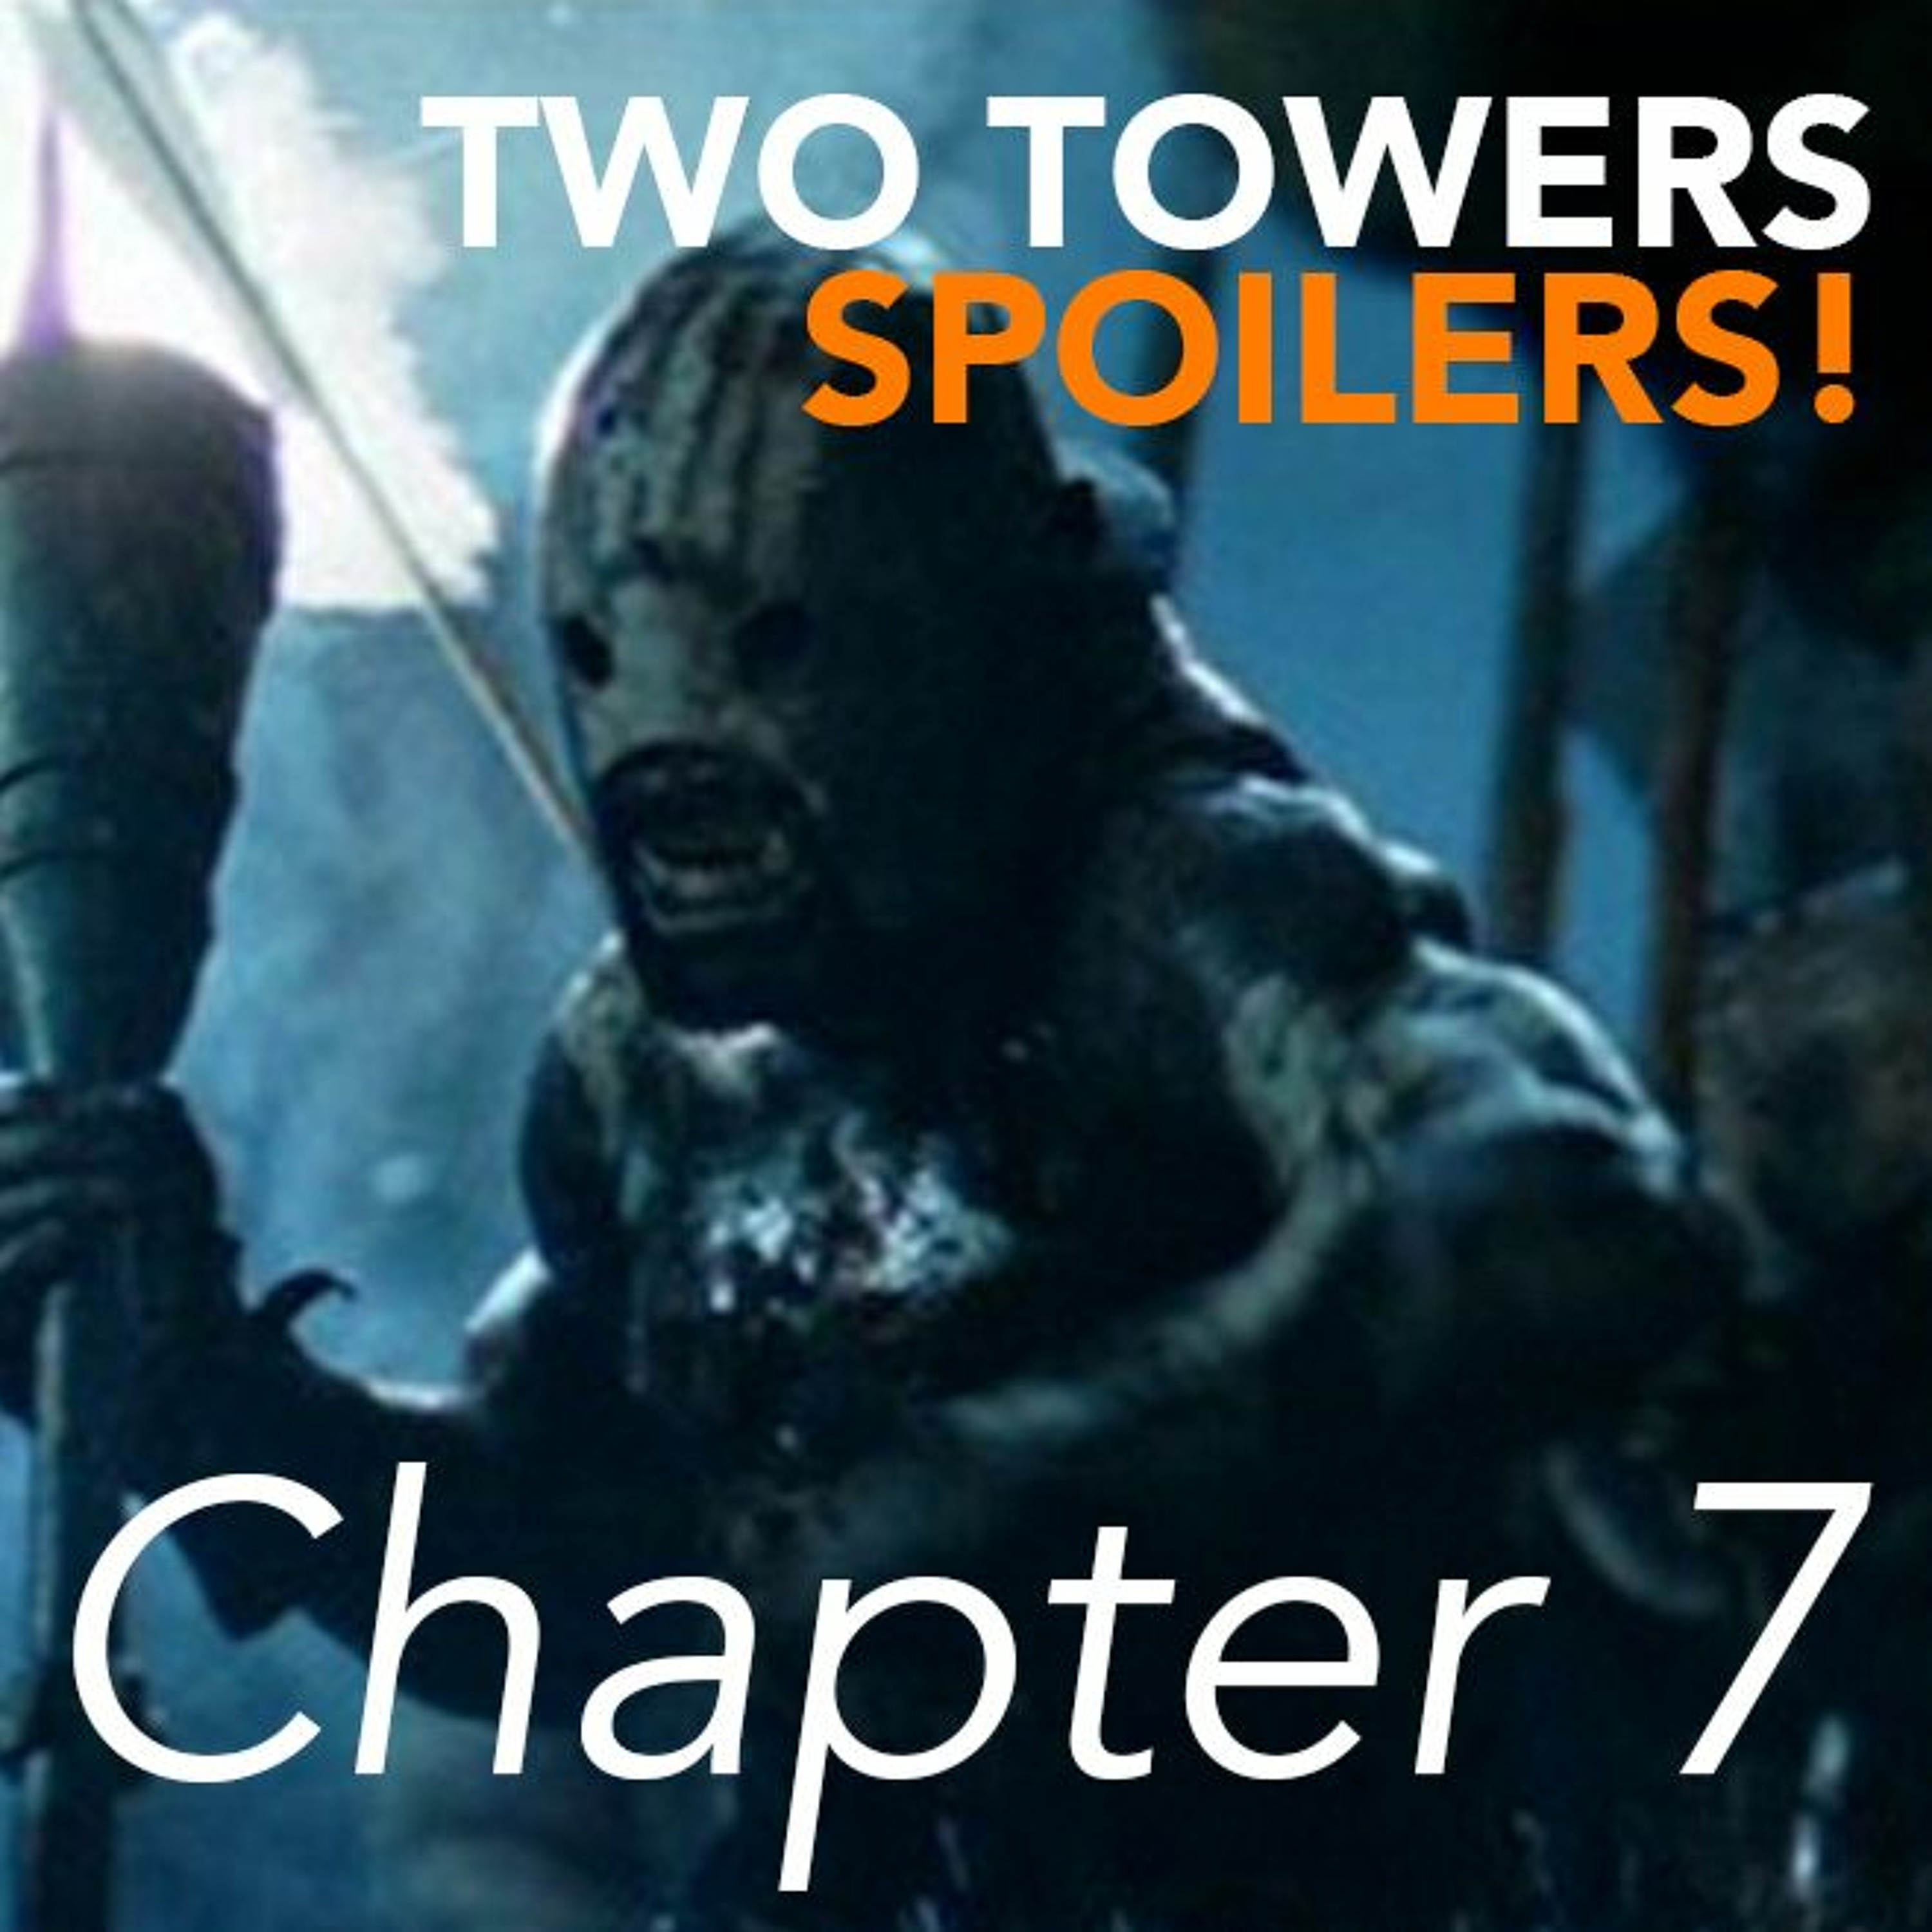 The Lord of the Rings: The Two Towers (2002) | Chapter 7 of 7 – Spoilers! #341